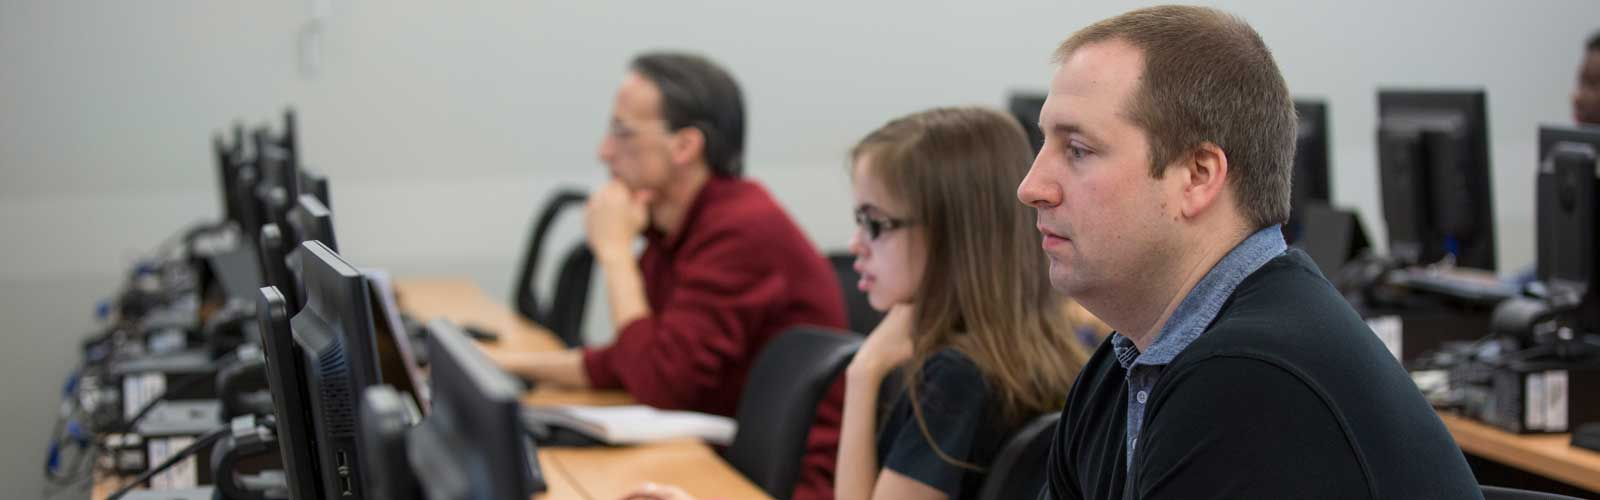 students in a health information technology class